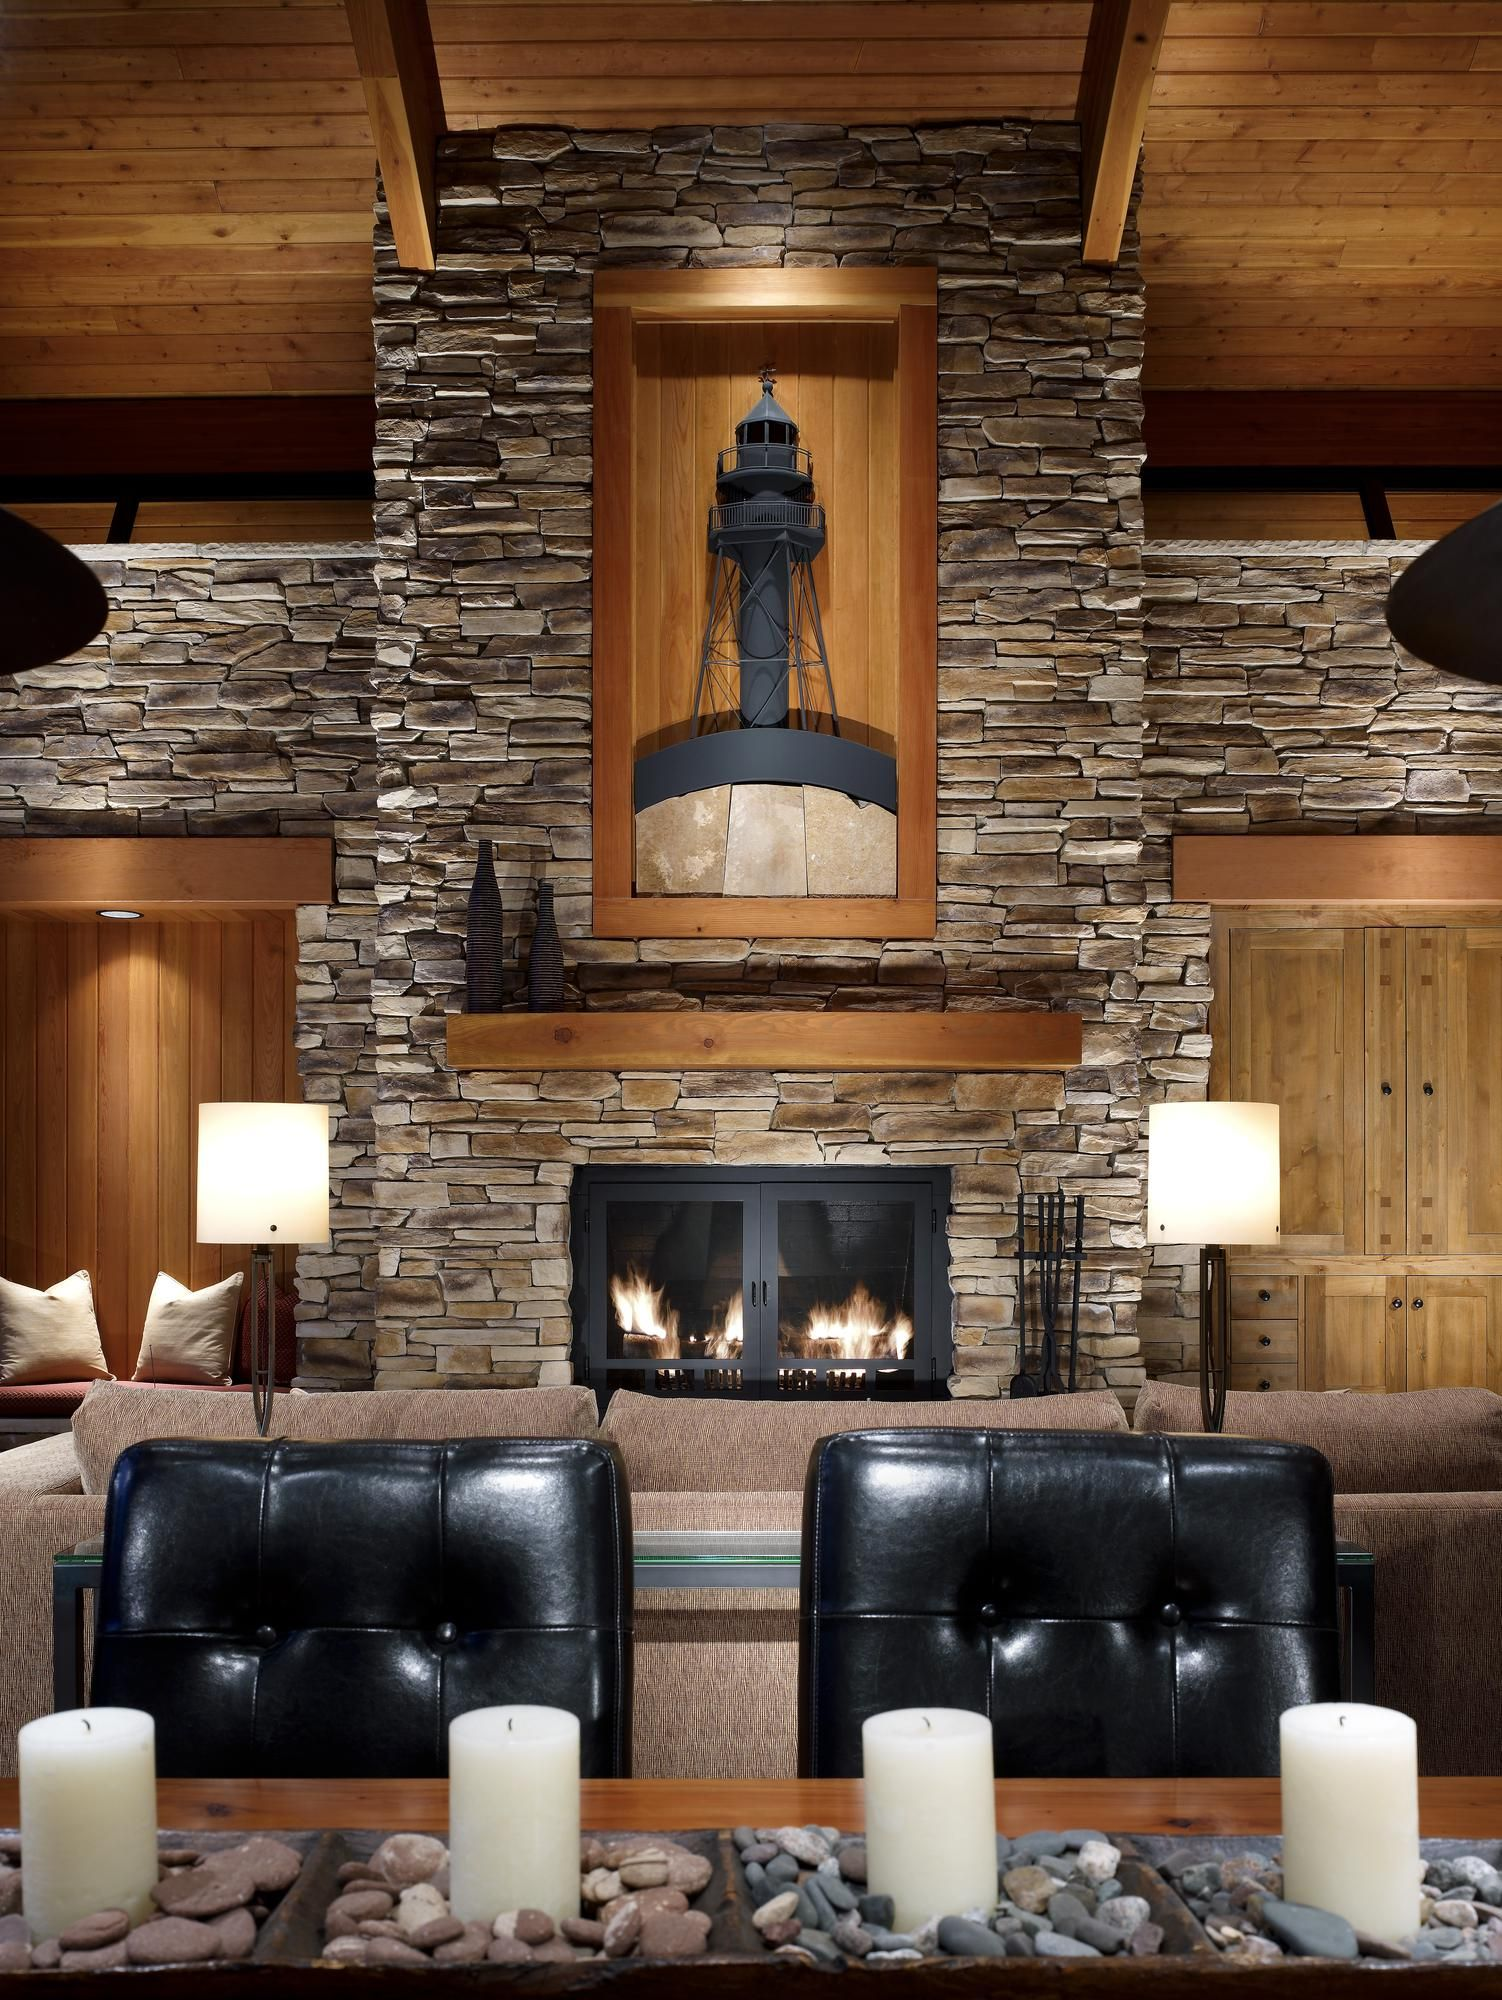 Eldorado Stone Veneer Fireplace North Woods Cabin Rooms I Want To Live In Stone Fireplace